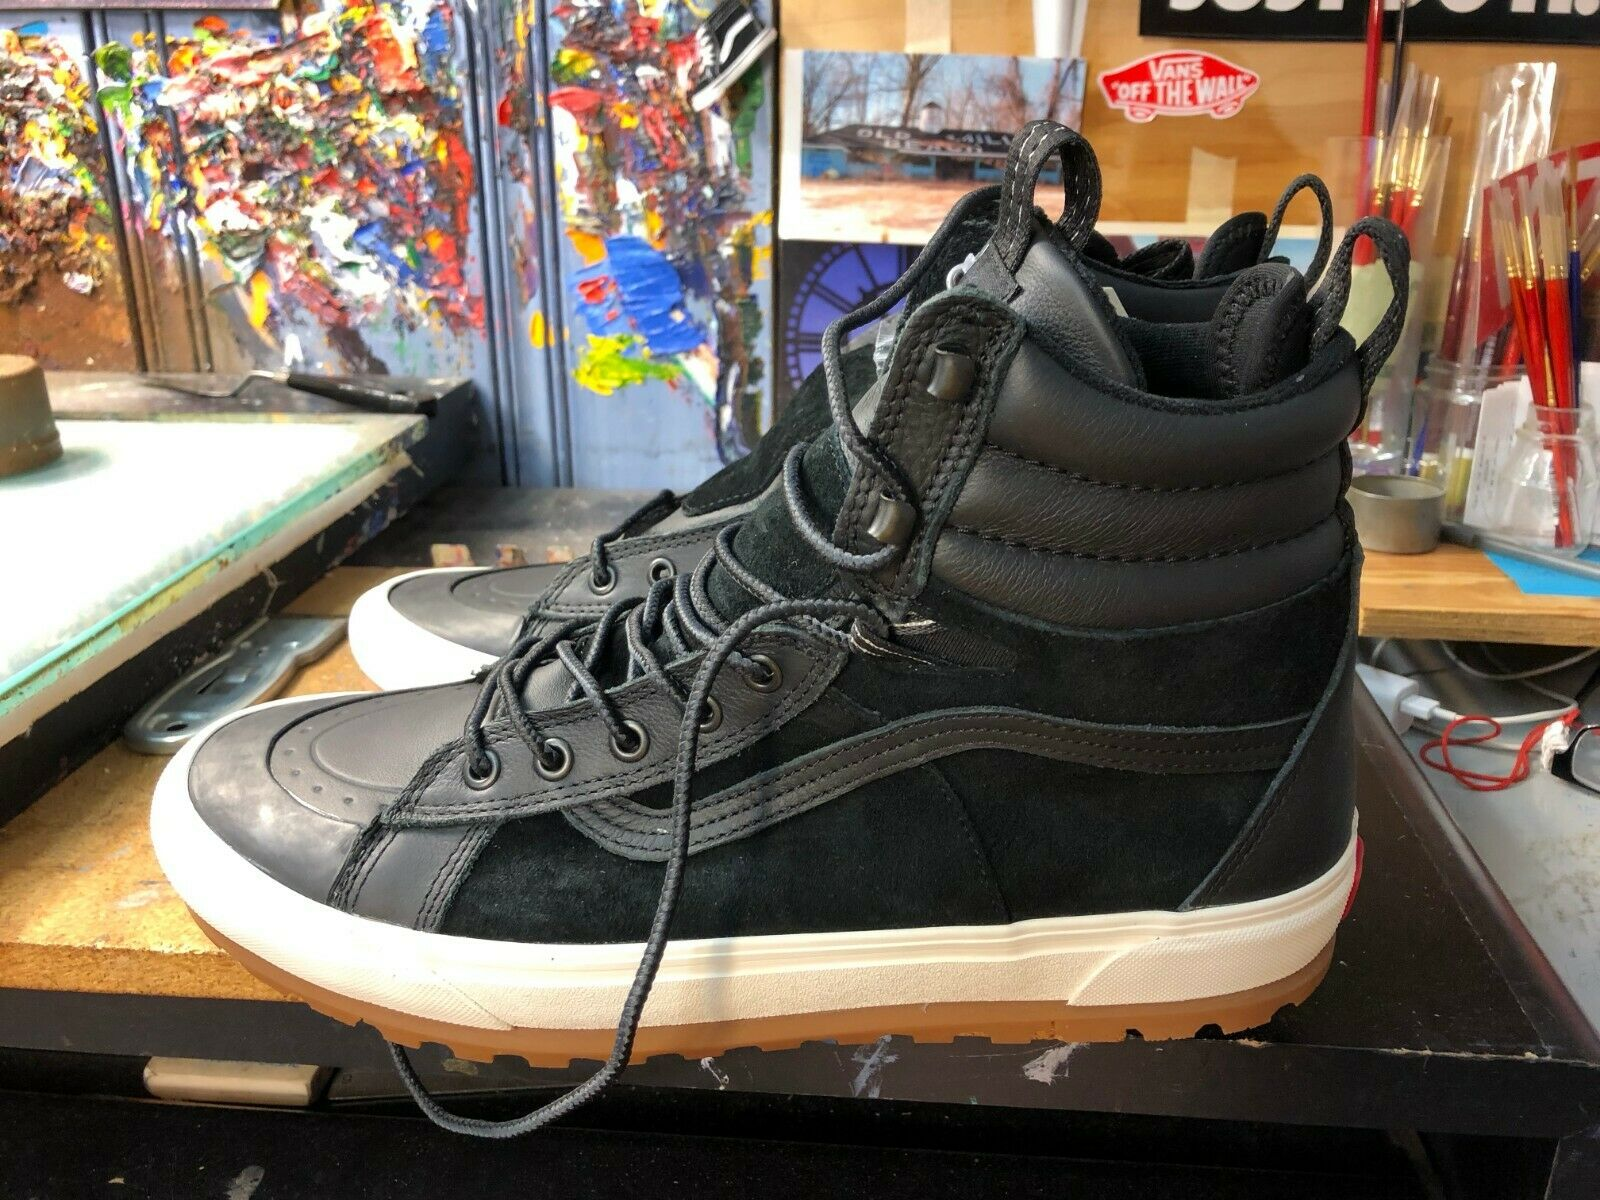 Vans Sk8-Hi Boot MTE DX  Black Marshmallow Size US 10.5 Men's VN0A3ZCFI28 New